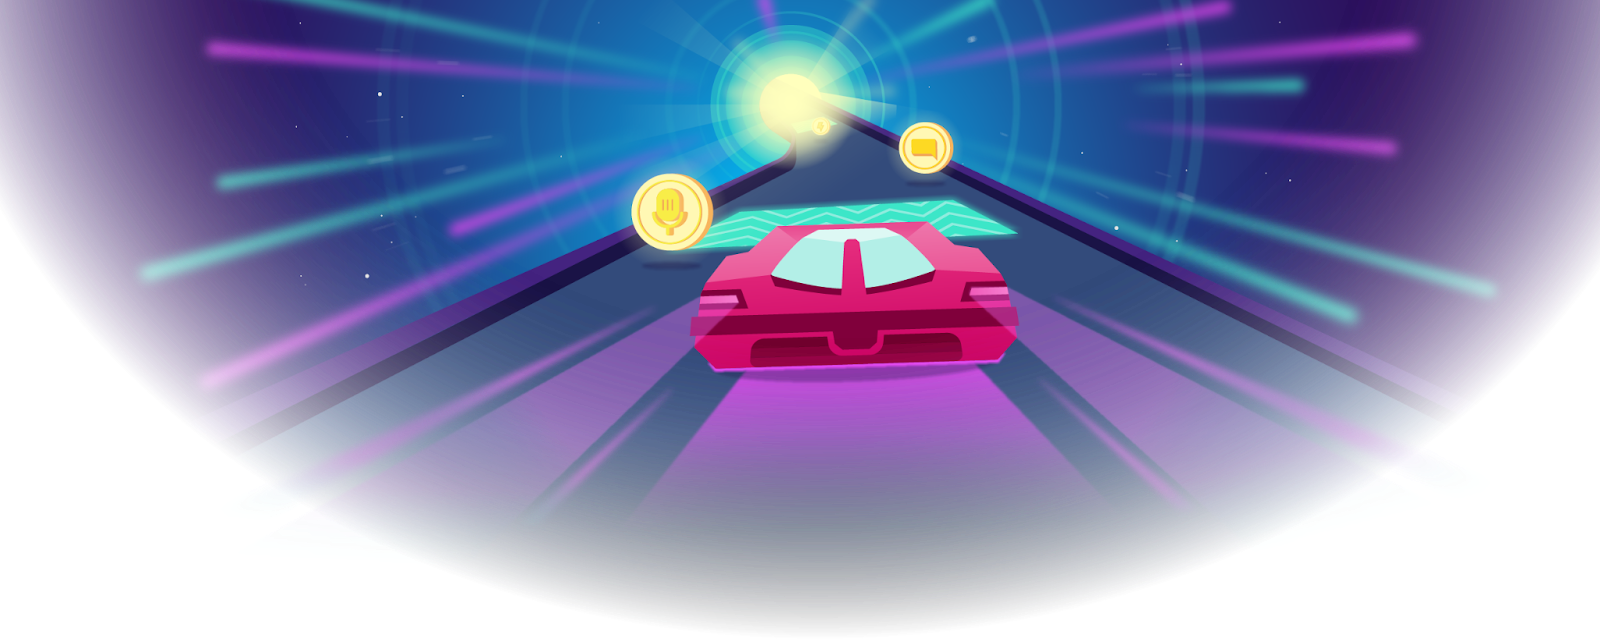 Illustration of pink car collecting coins